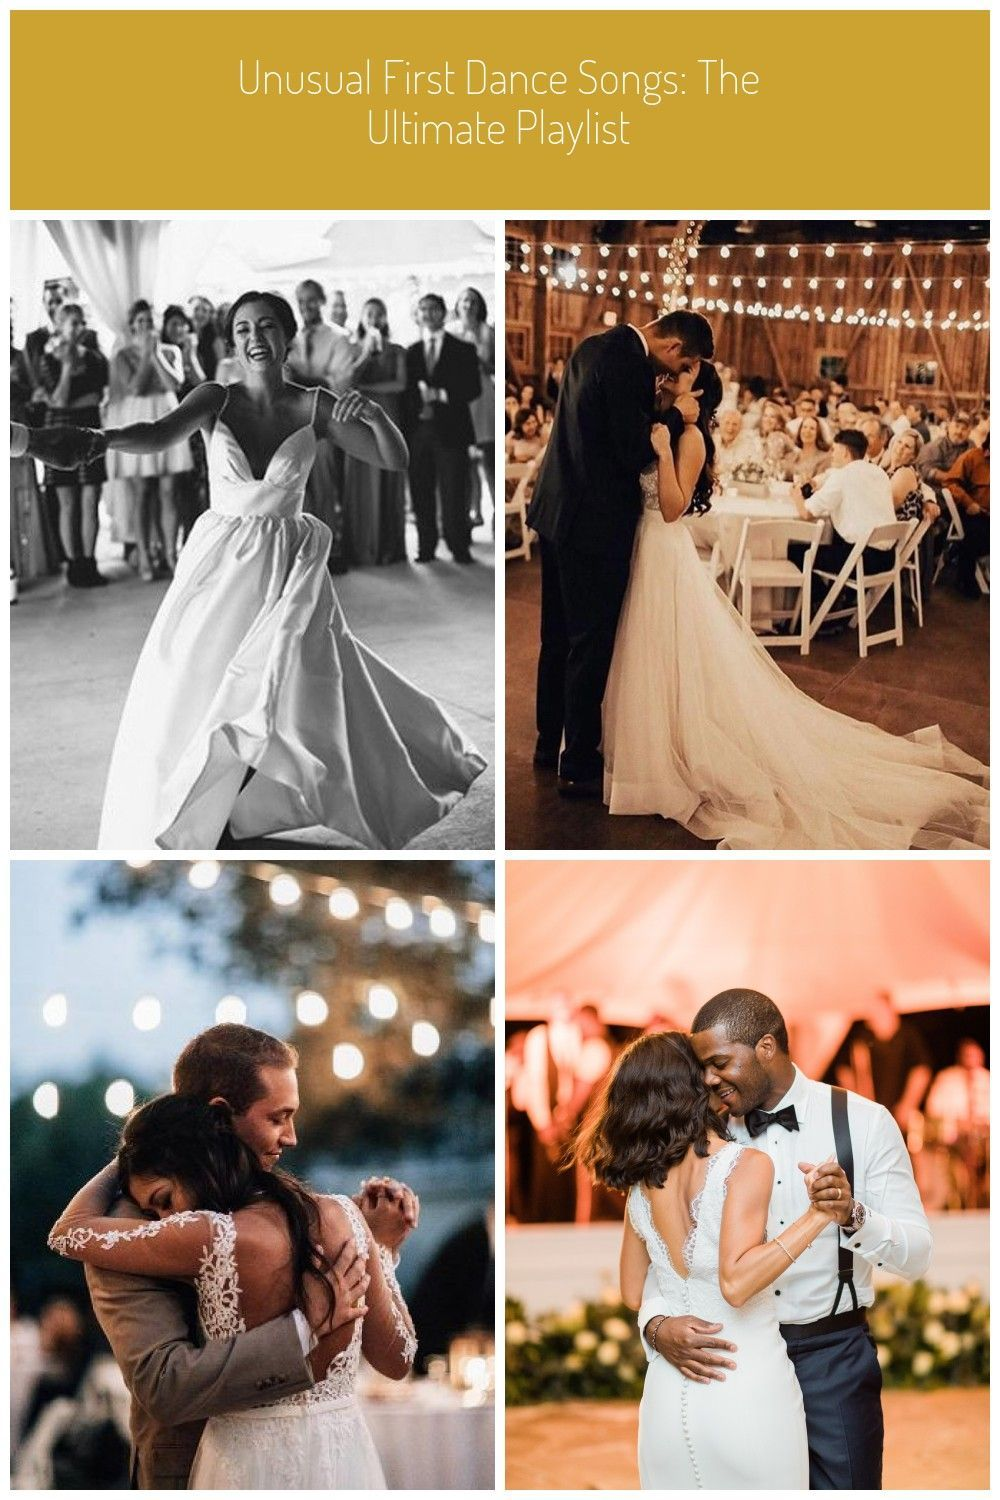 Unusual First Dance Songs The Ultimate Playlist First Dance Unusual First Danc Danc Dance In 2020 First Dance Songs Ultimate Playlist First Dance Wedding Songs